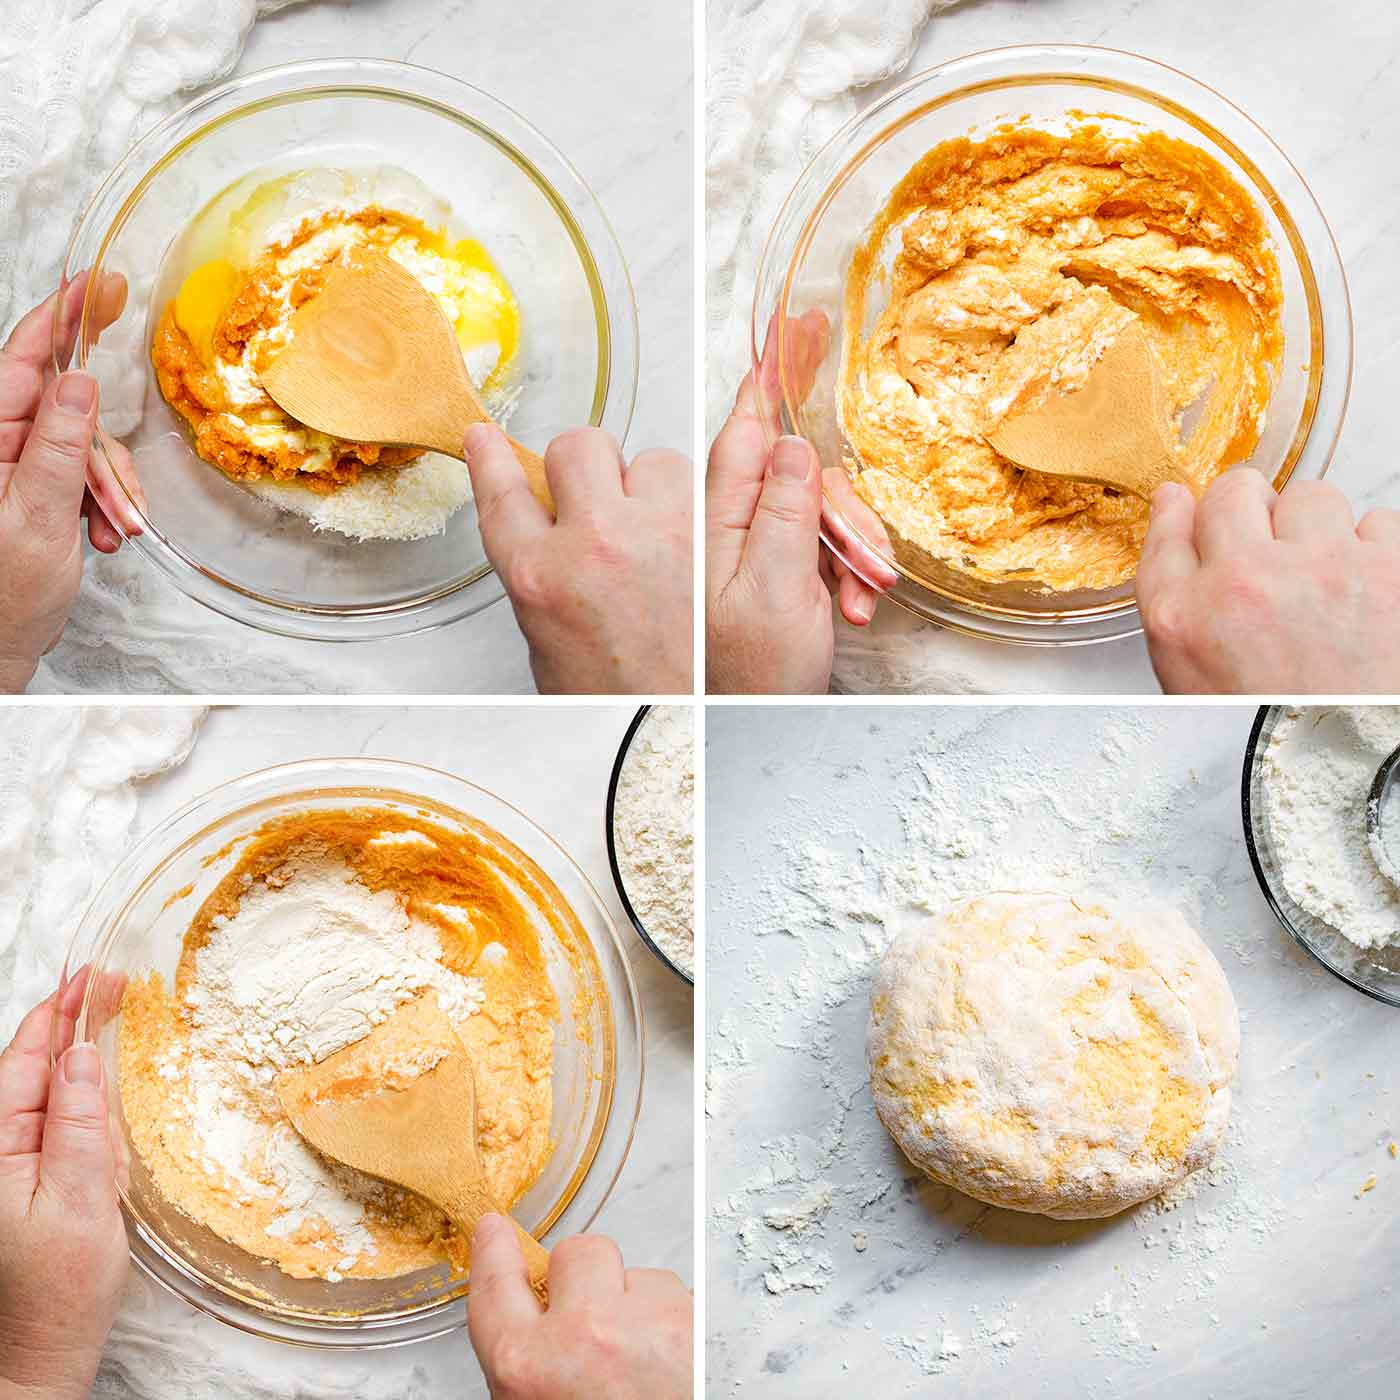 Mixing up the pumpkin gnocchi dough